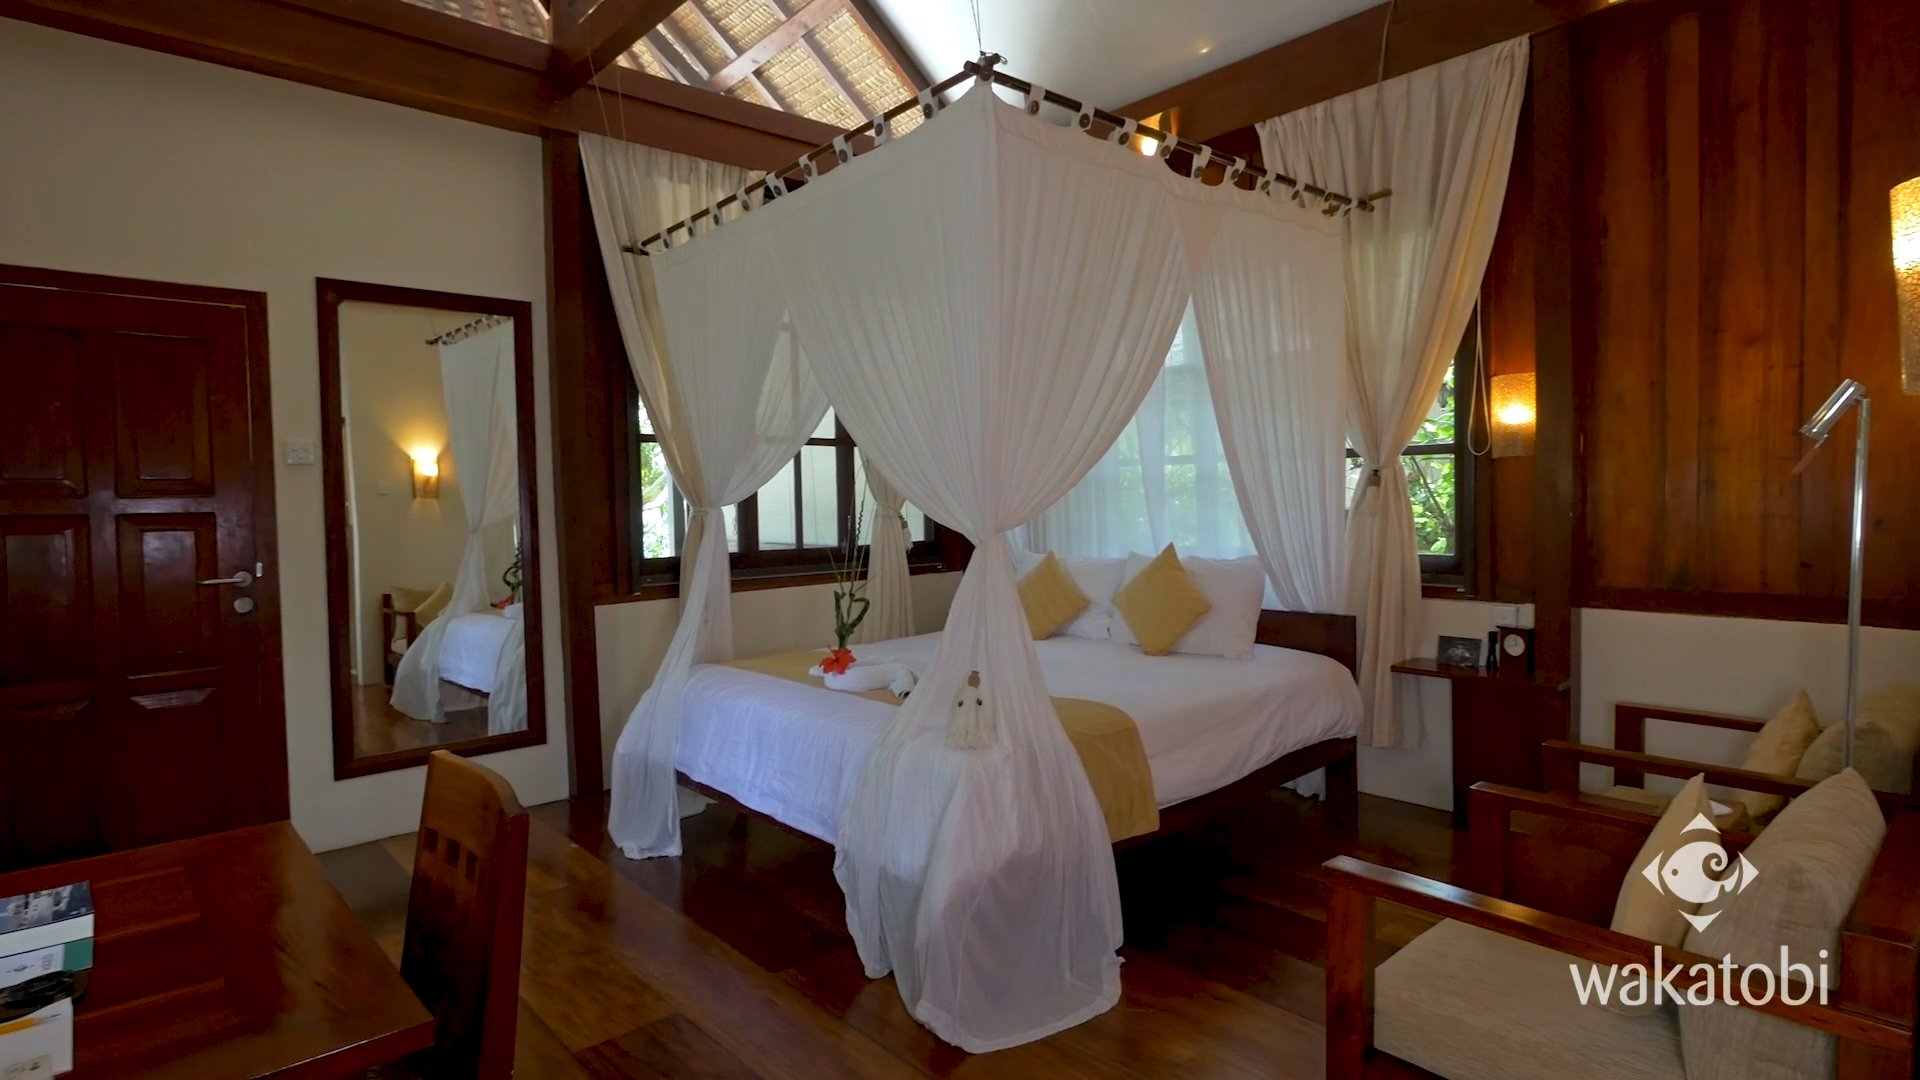 Wakatobi Resort's rooms